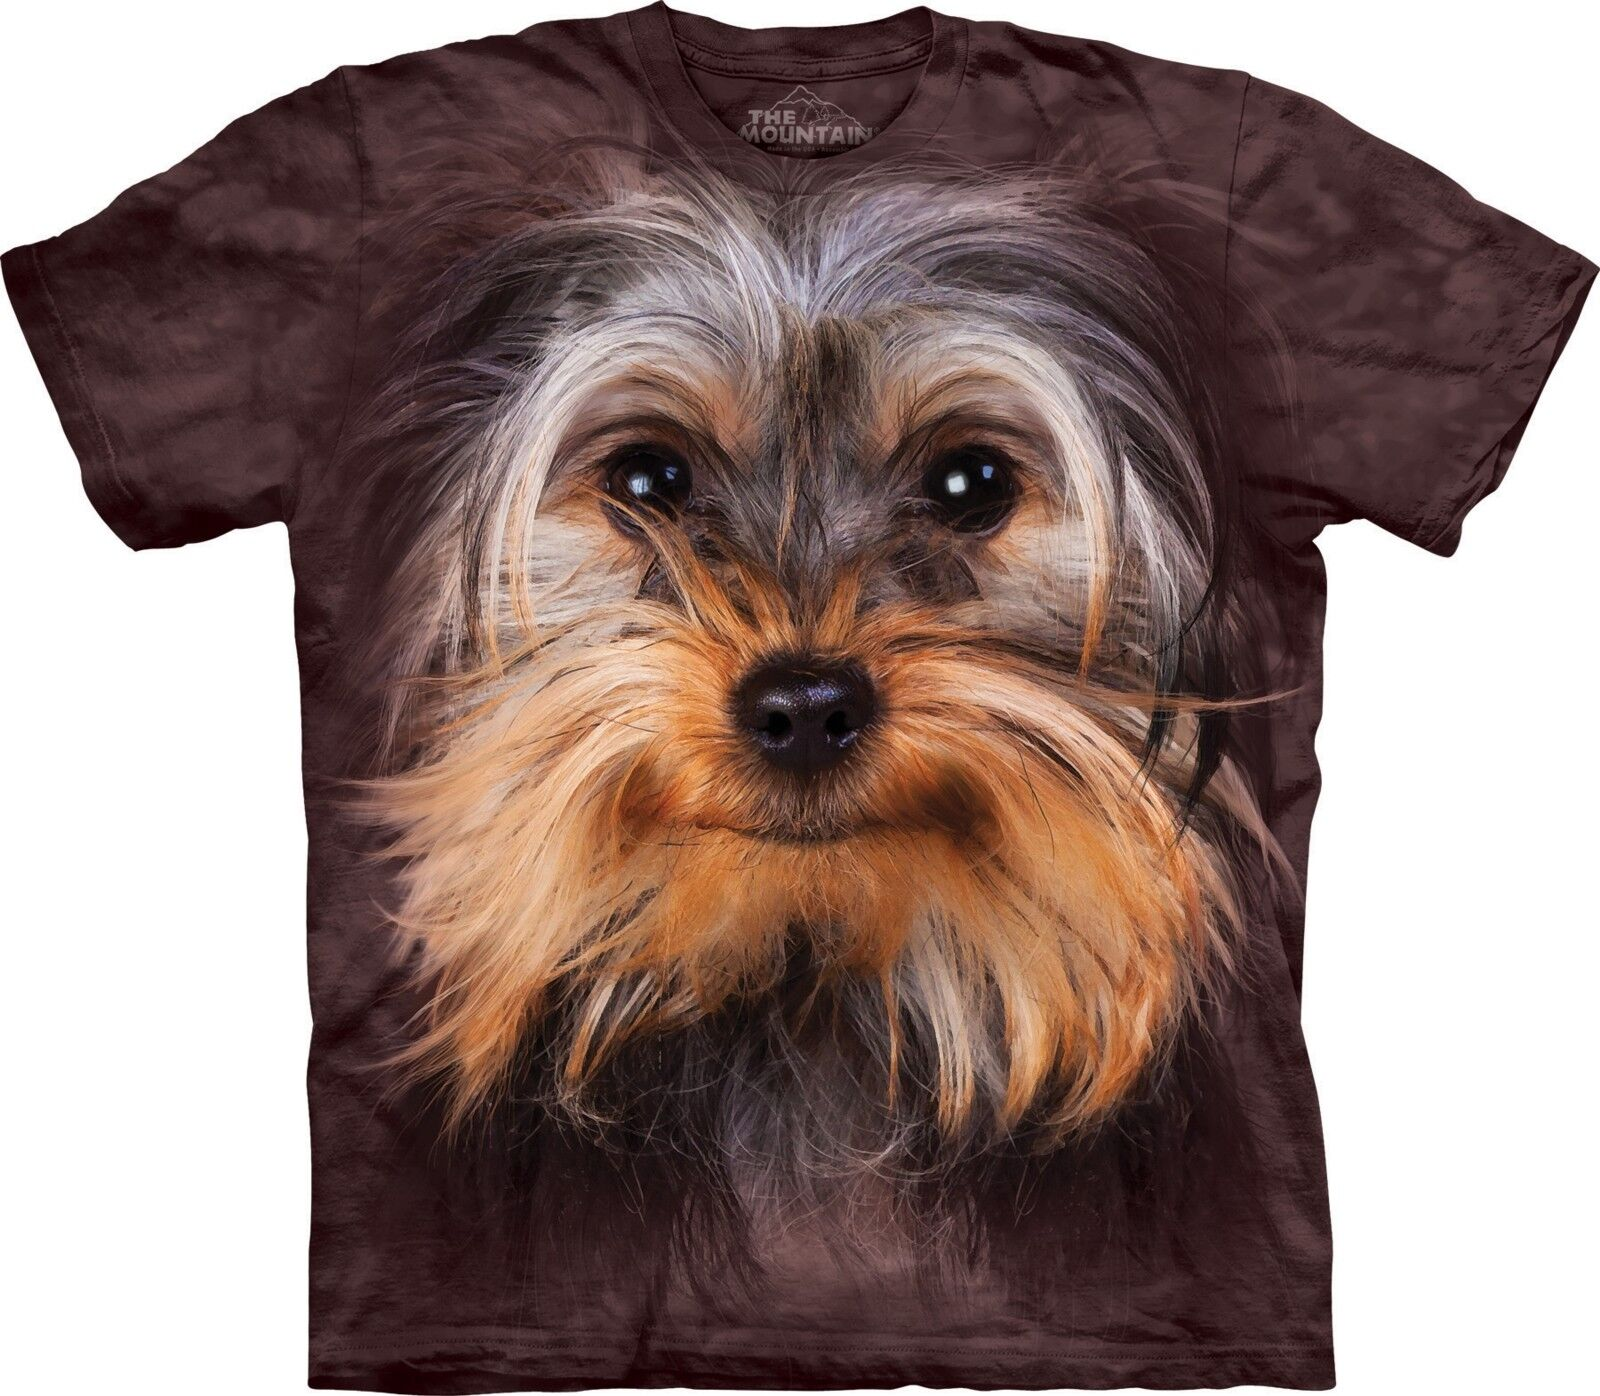 Yorkshire Terrier Face Dogs T Shirt Adult Unisex Mountain